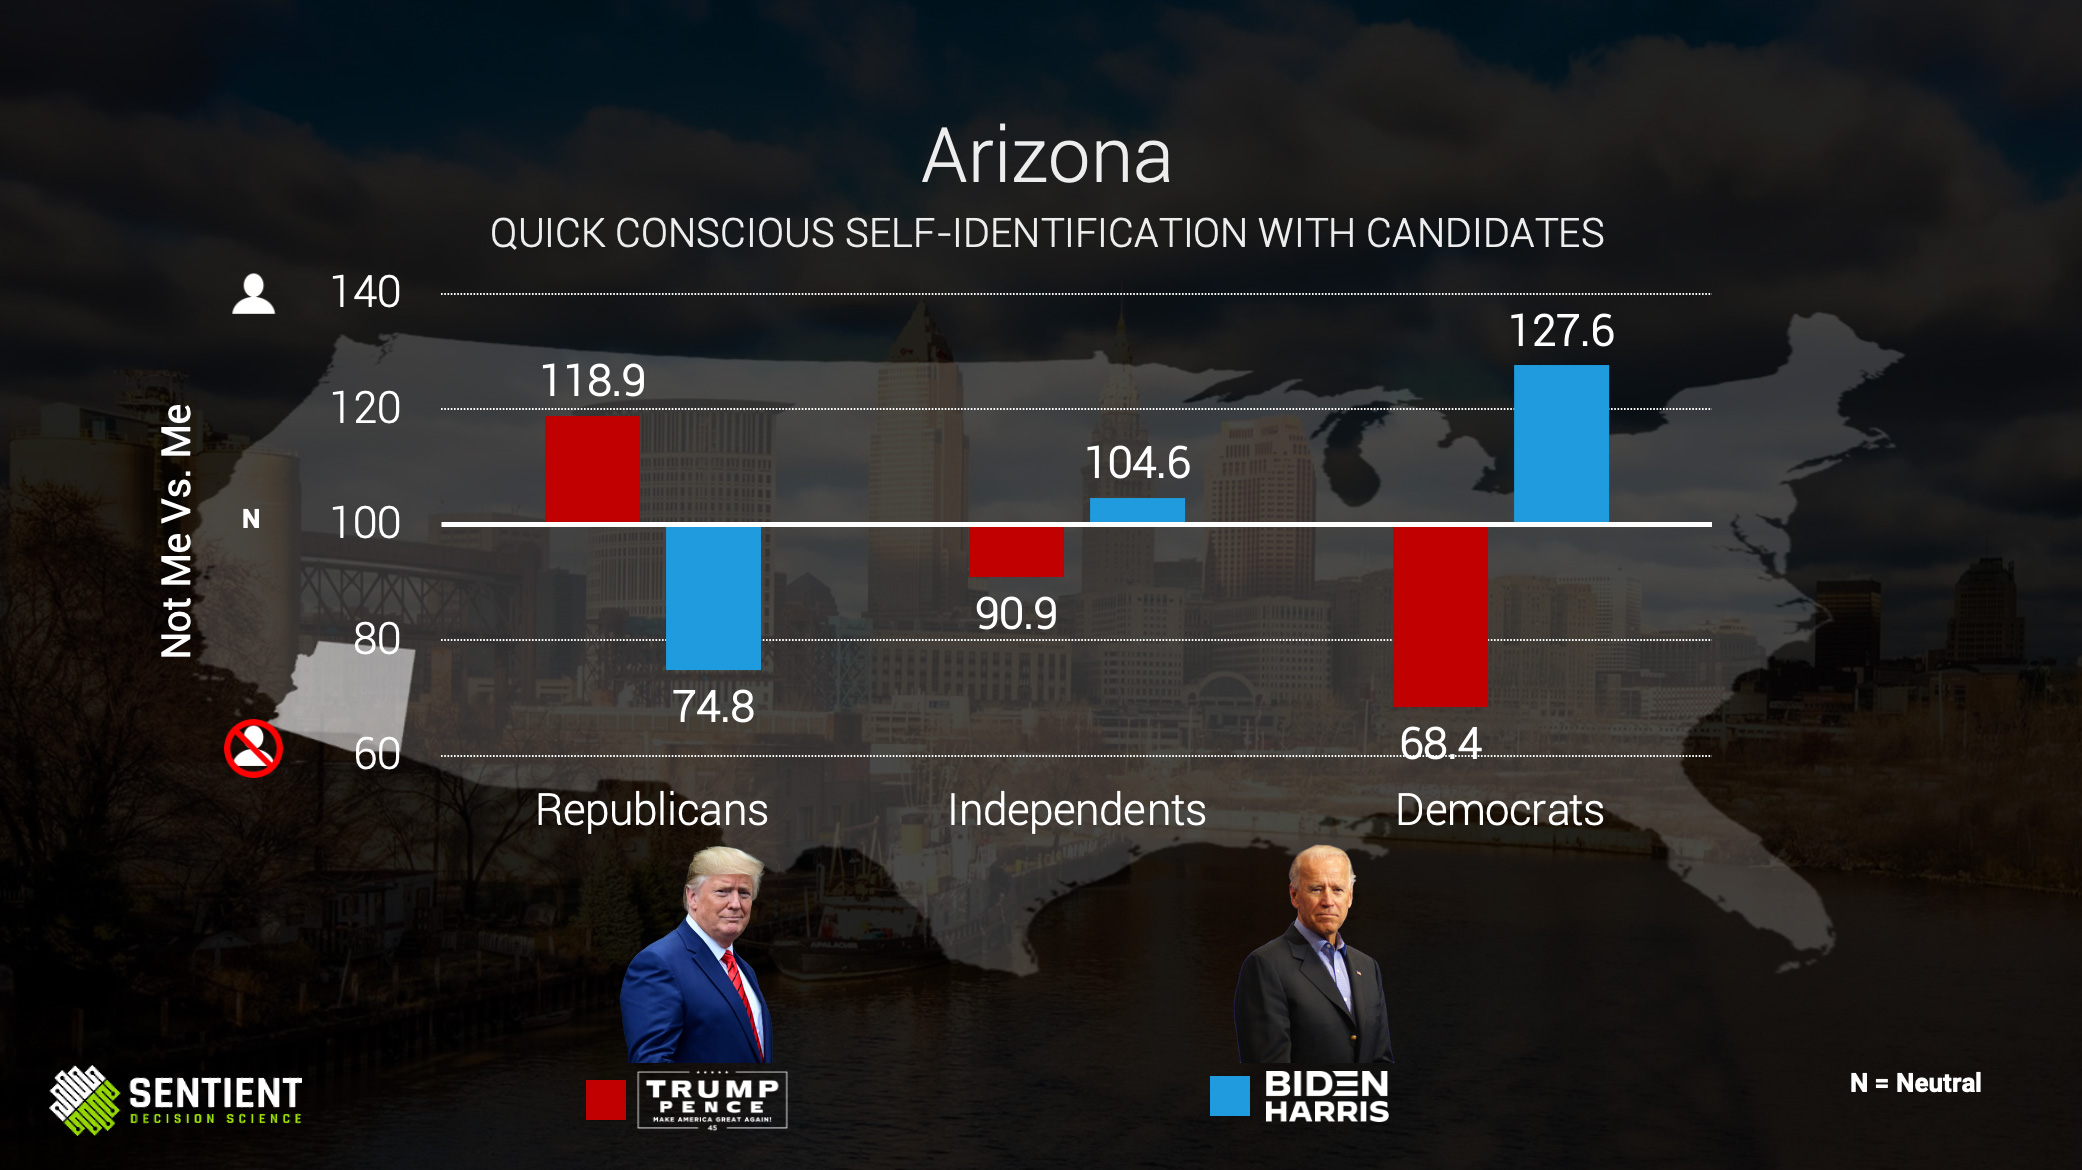 Arizona Quick Conscious Self-ID of Candidates